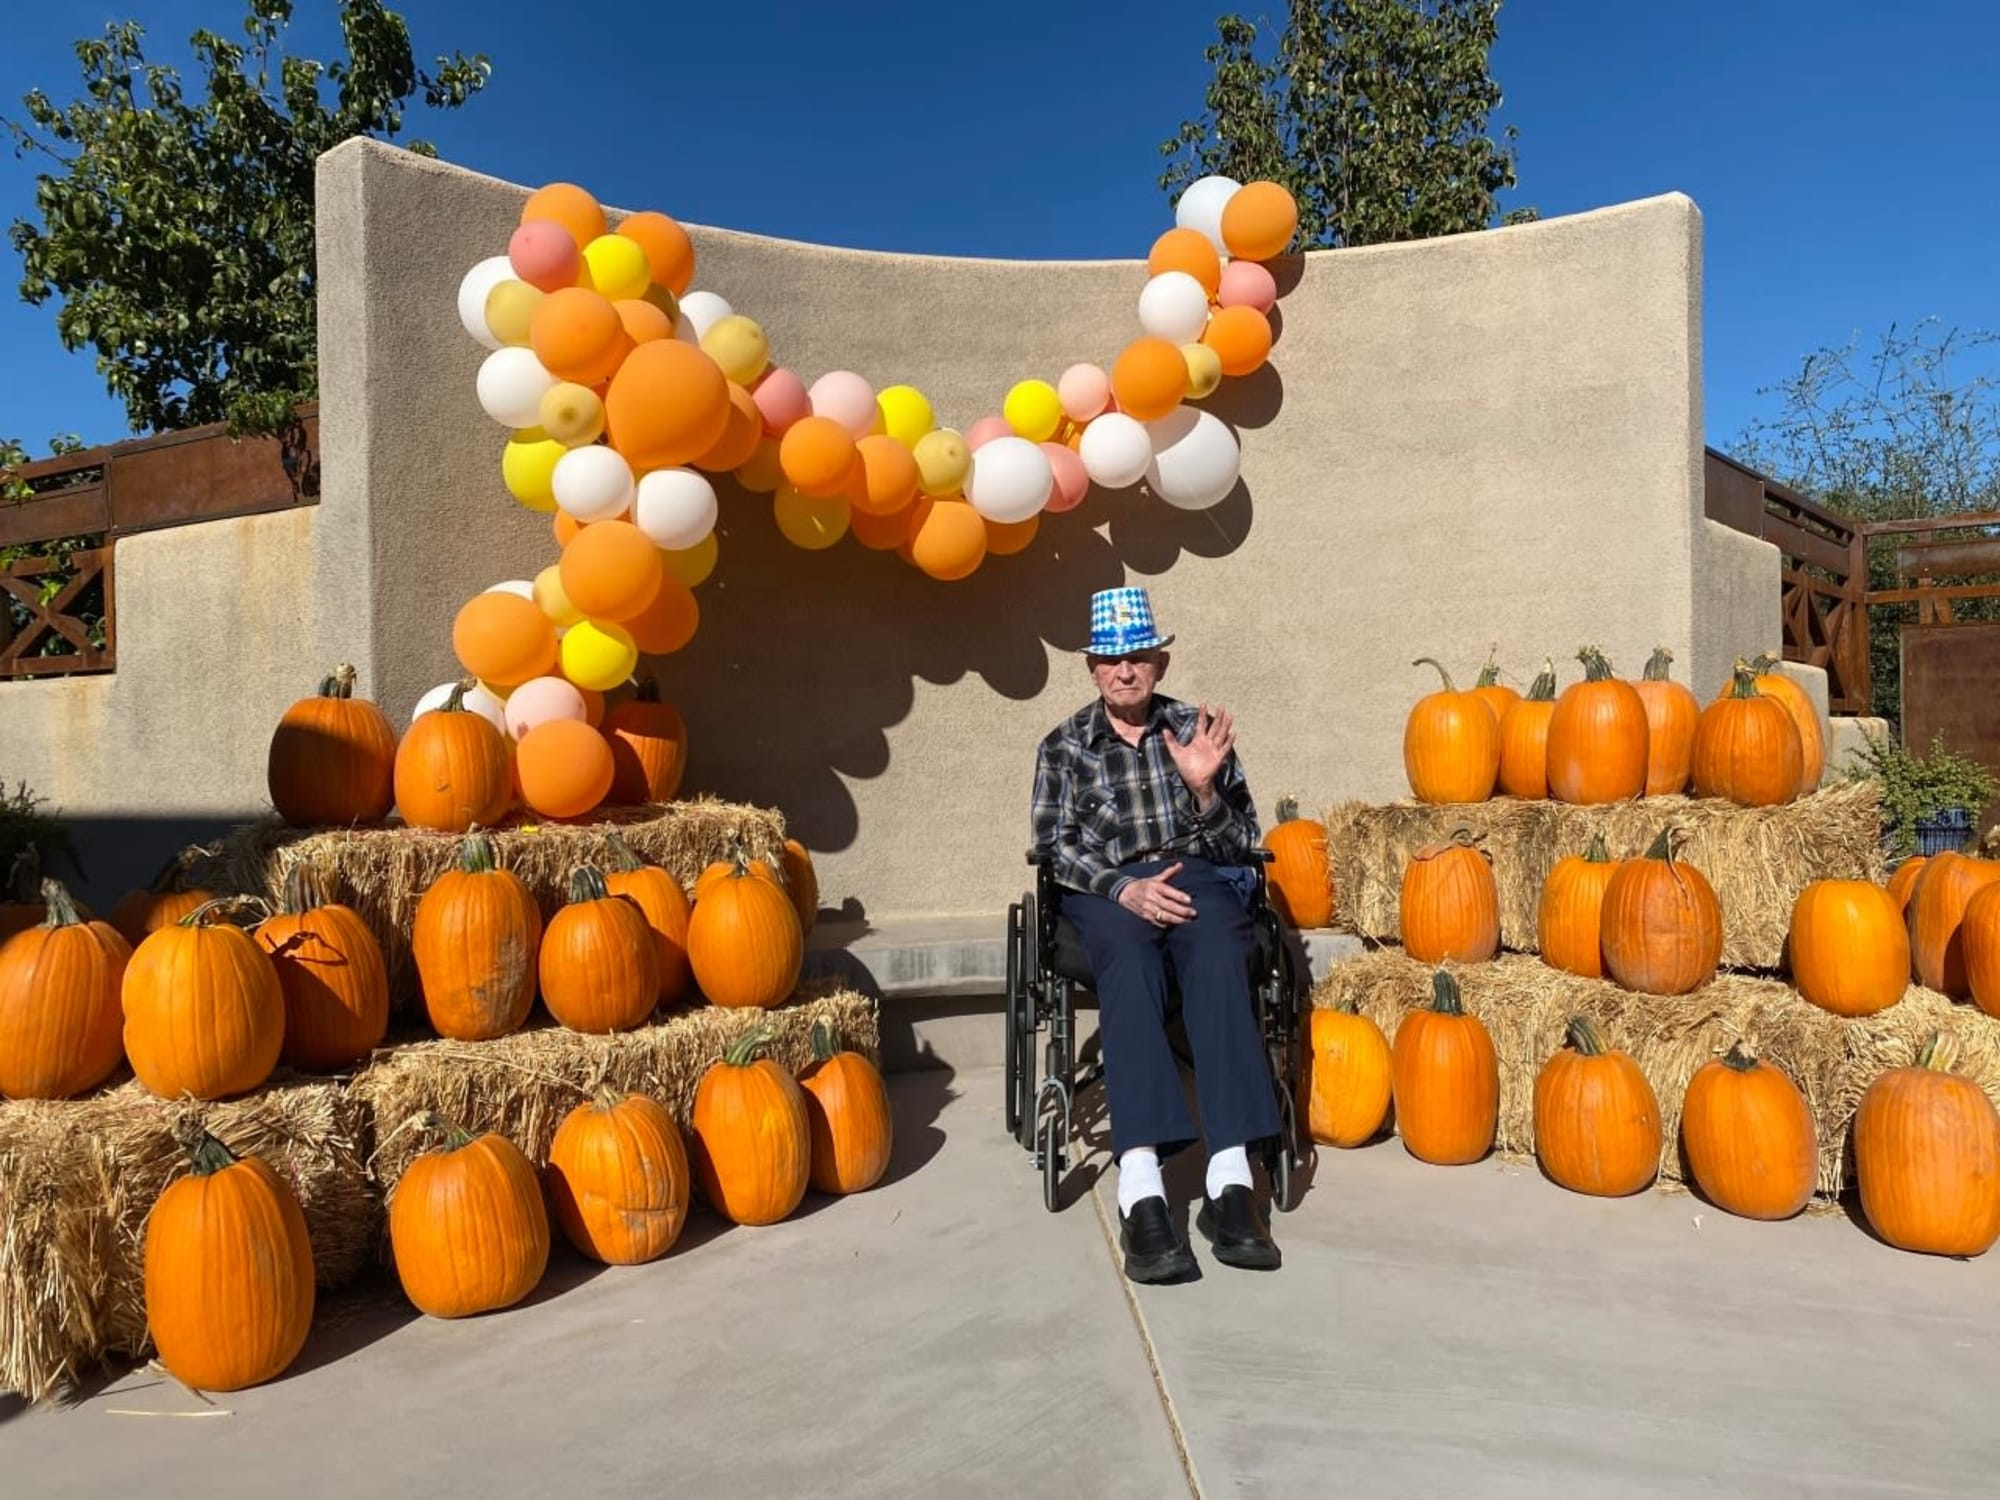 Pumpkins at Hacienda Del Rey in Litchfield Park, AZ